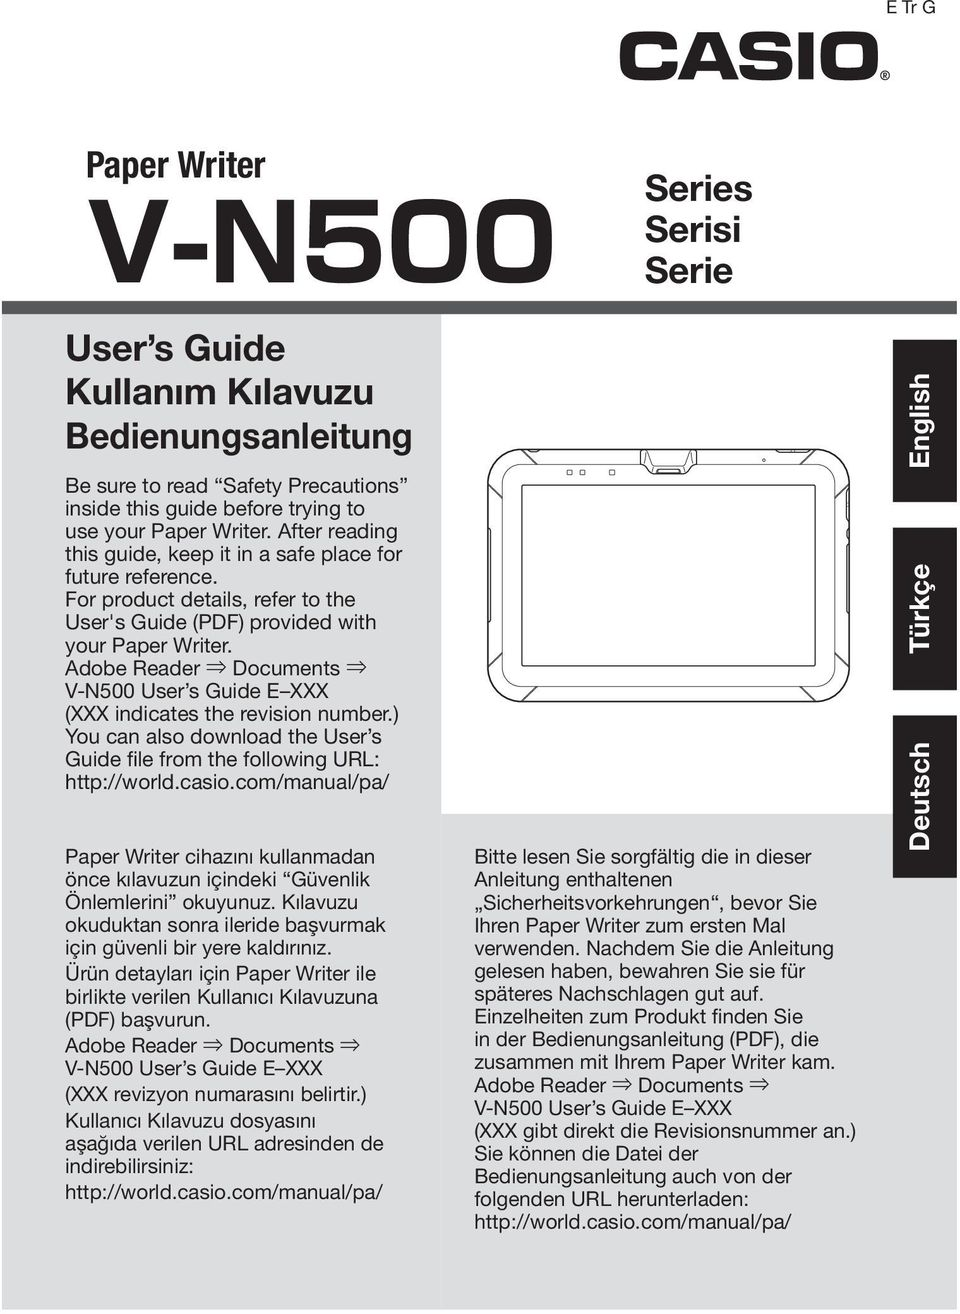 Adobe Reader Documents V-N500 User s Guide E XXX (XXX indicates the revision number.) You can also download the User s Guide file from the following URL: http://world.casio.